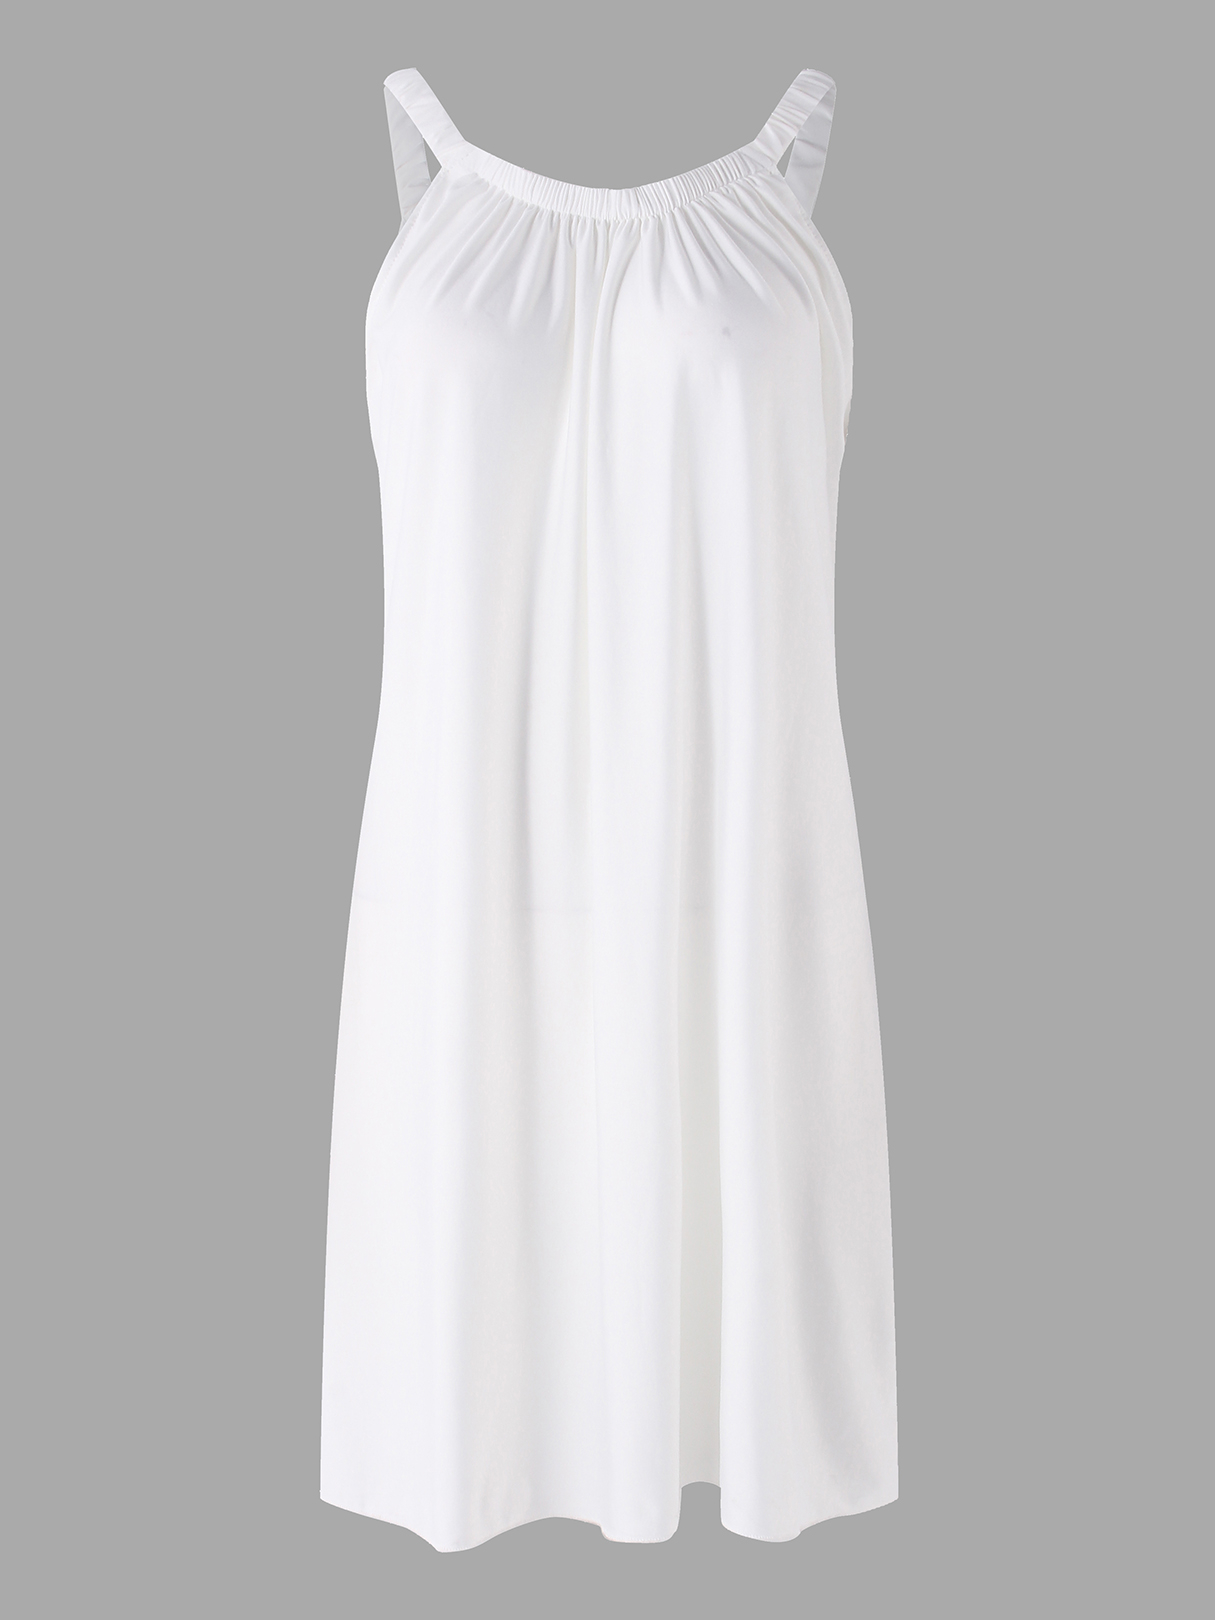 White Spaghetti Plain Round Neck Sleeveless Mini Dress sexy plain color mini dress with round neck